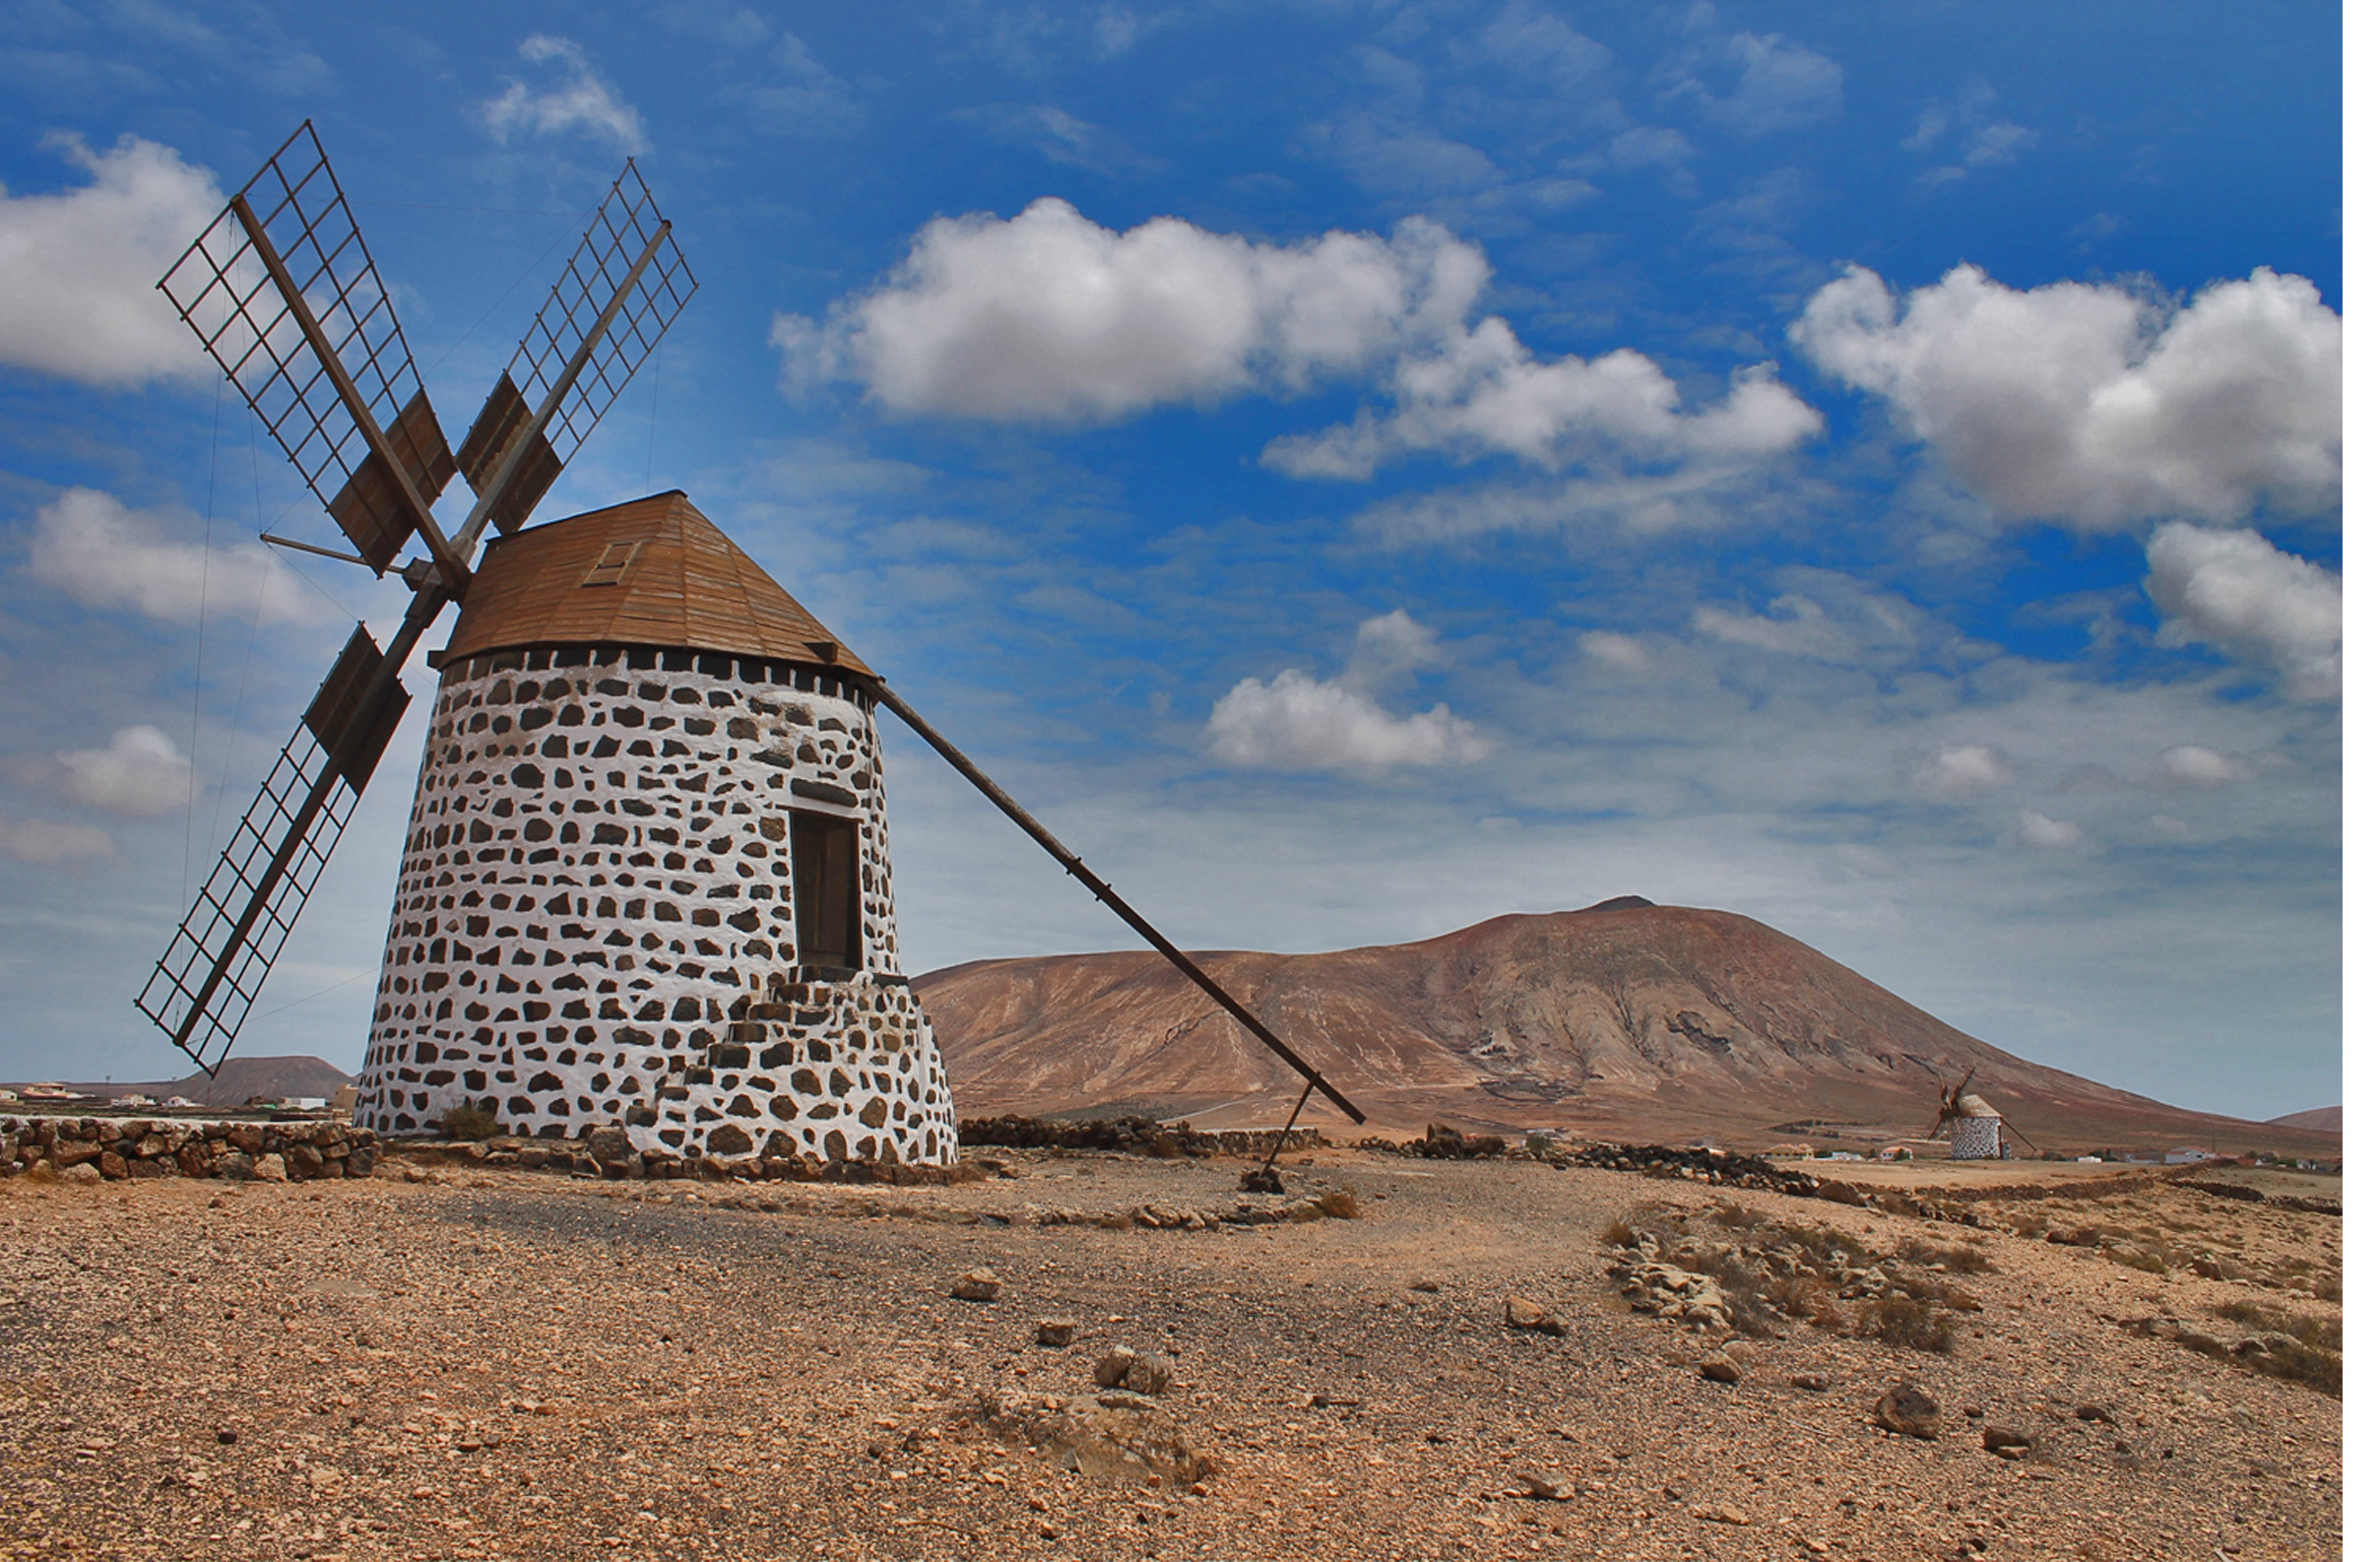 The windmills of LA OLIVA